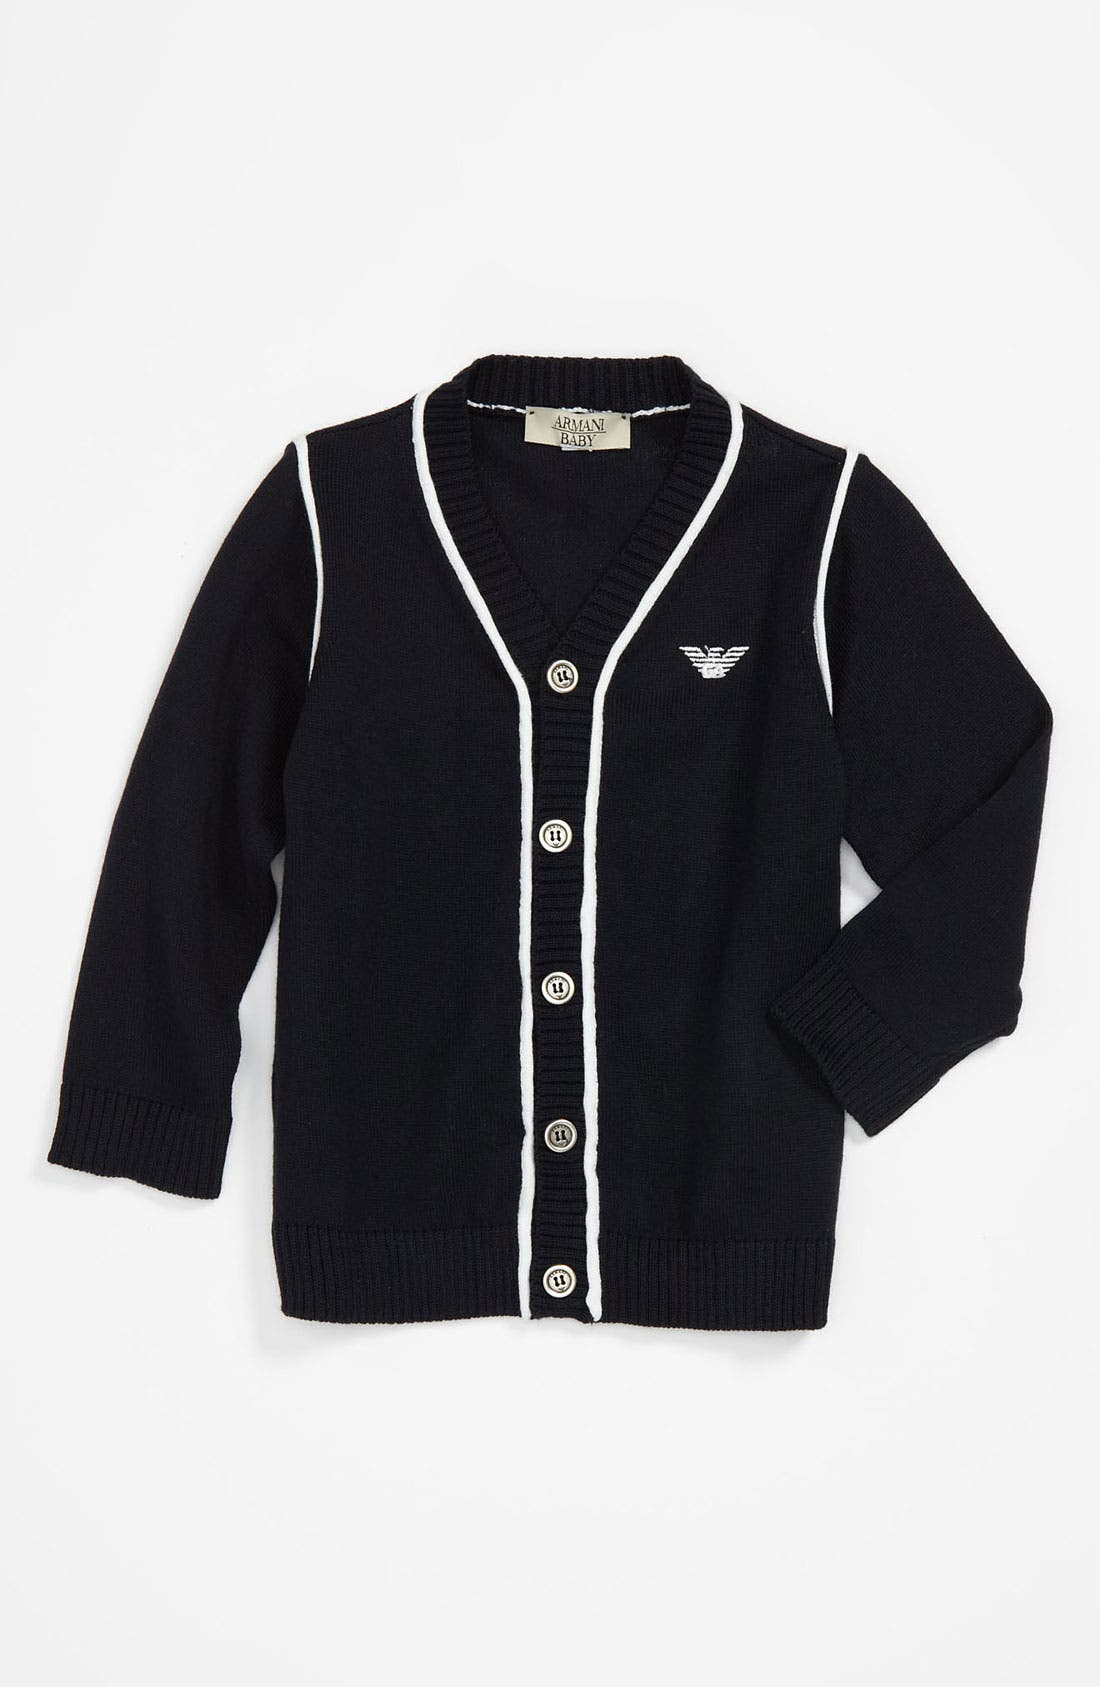 Main Image - Armani Junior Cardigan (Infant)